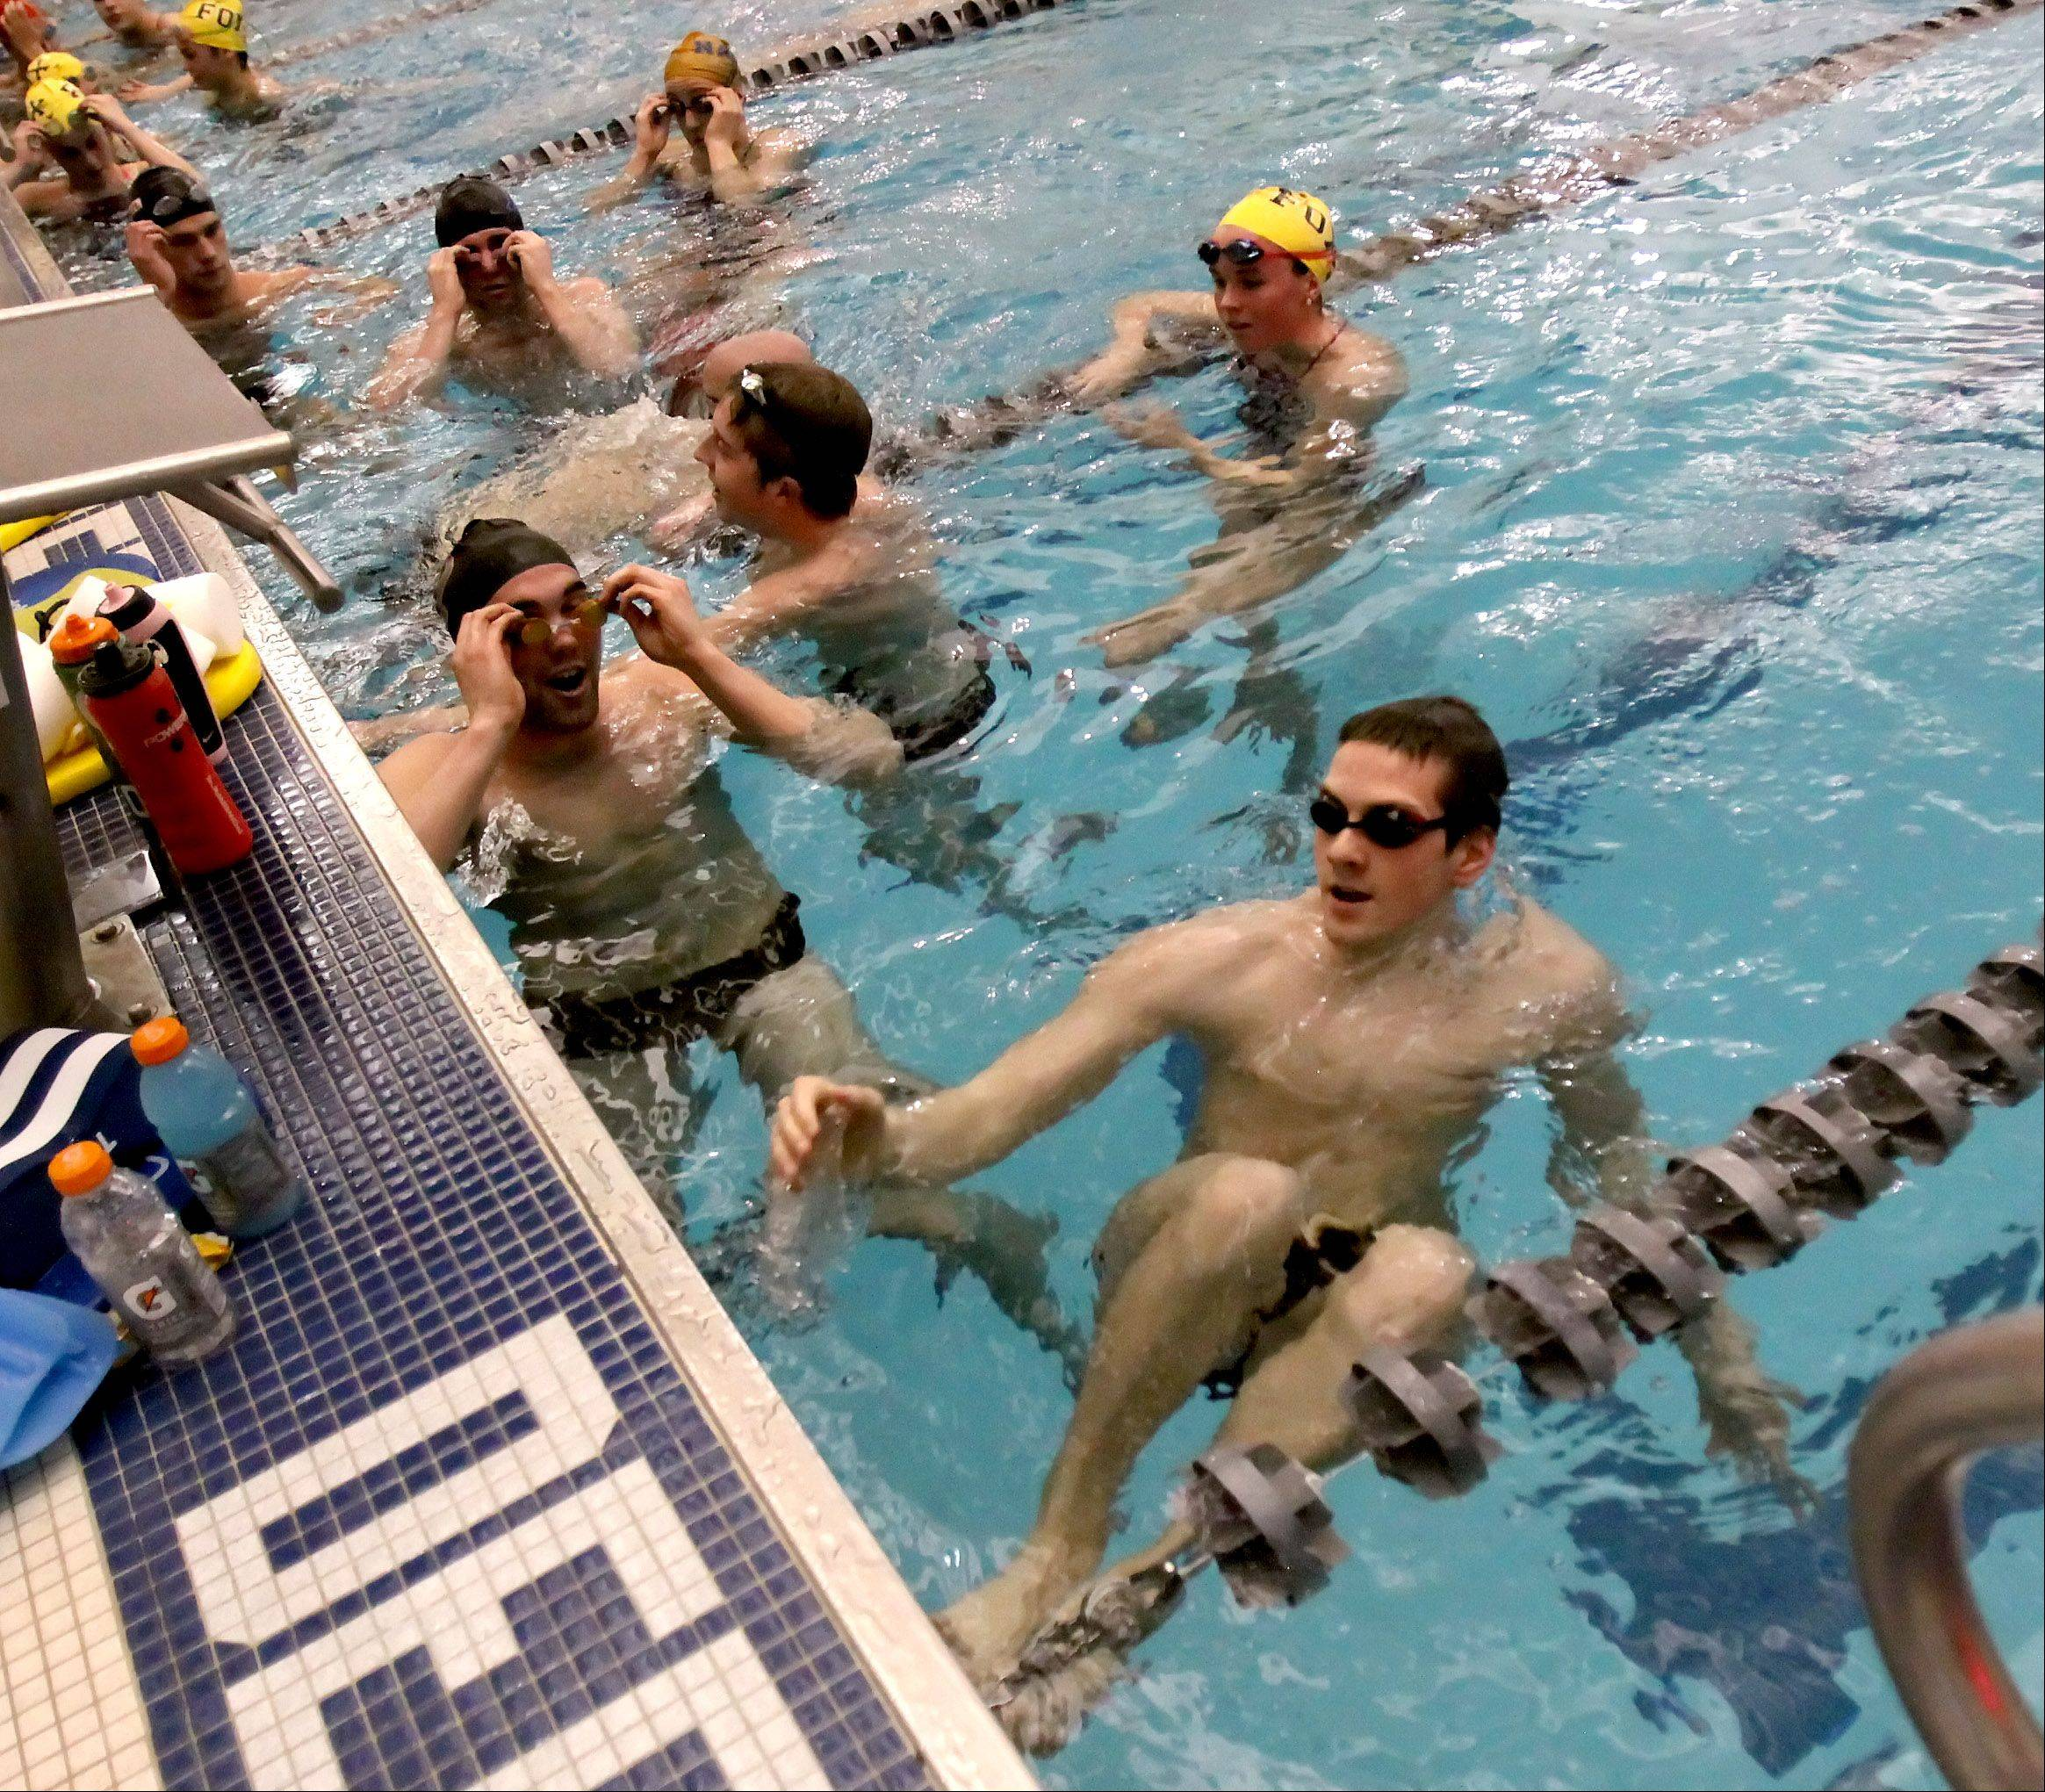 Grant Betulius, right, Neuqua Valley High School graduate and current student at the University of Iowa, trains with other former area high school swimmers and possible future Olympians at his alma mater Wednesday during their holiday break.